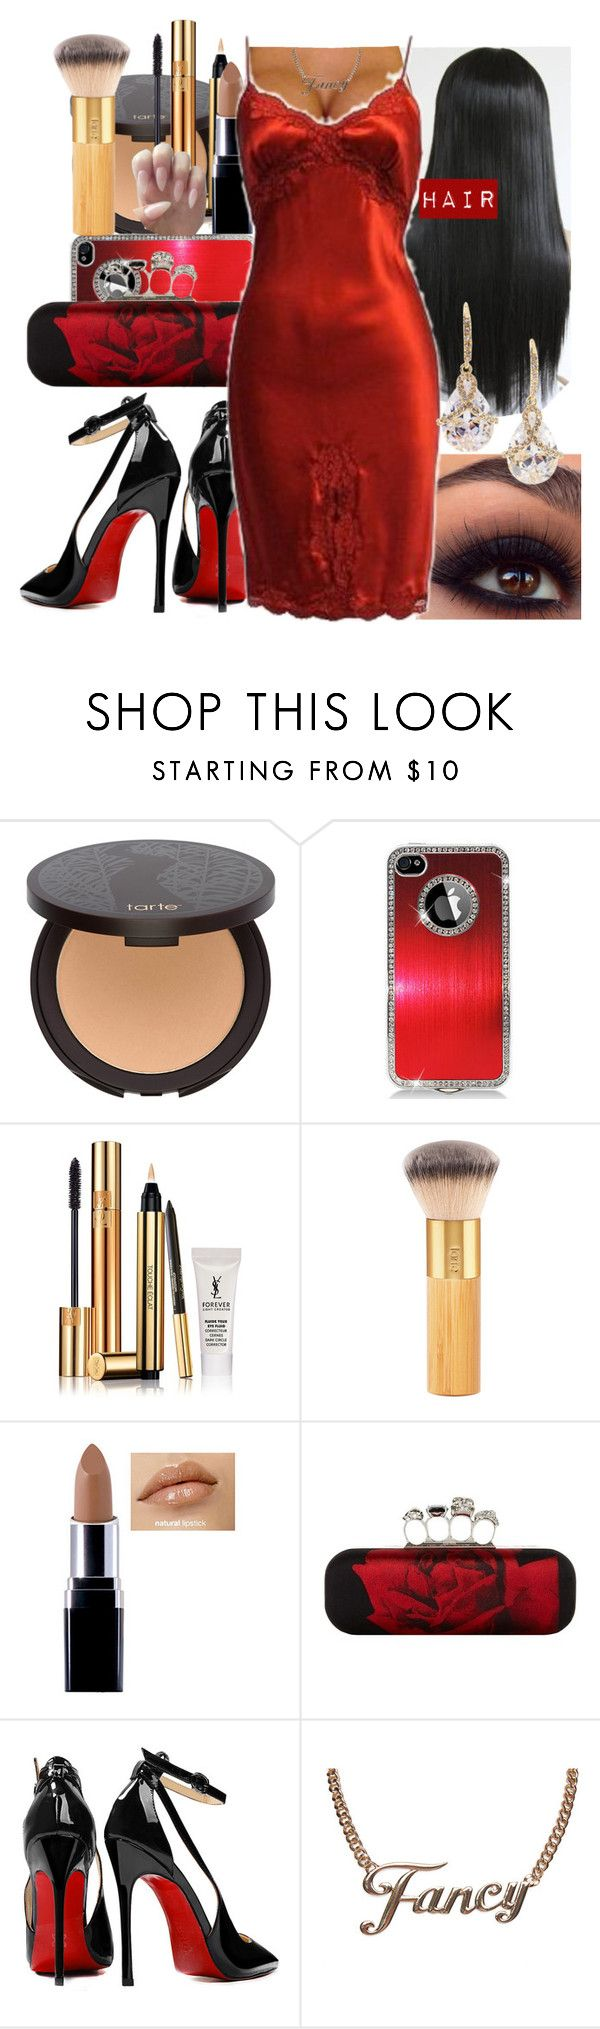 """""""Hip Hopera Club"""" by missk2blue ❤ liked on Polyvore featuring tarte, Yves Saint Laurent, Alexander McQueen, Posh Girl, Freddy, Wet Seal and Fragments"""